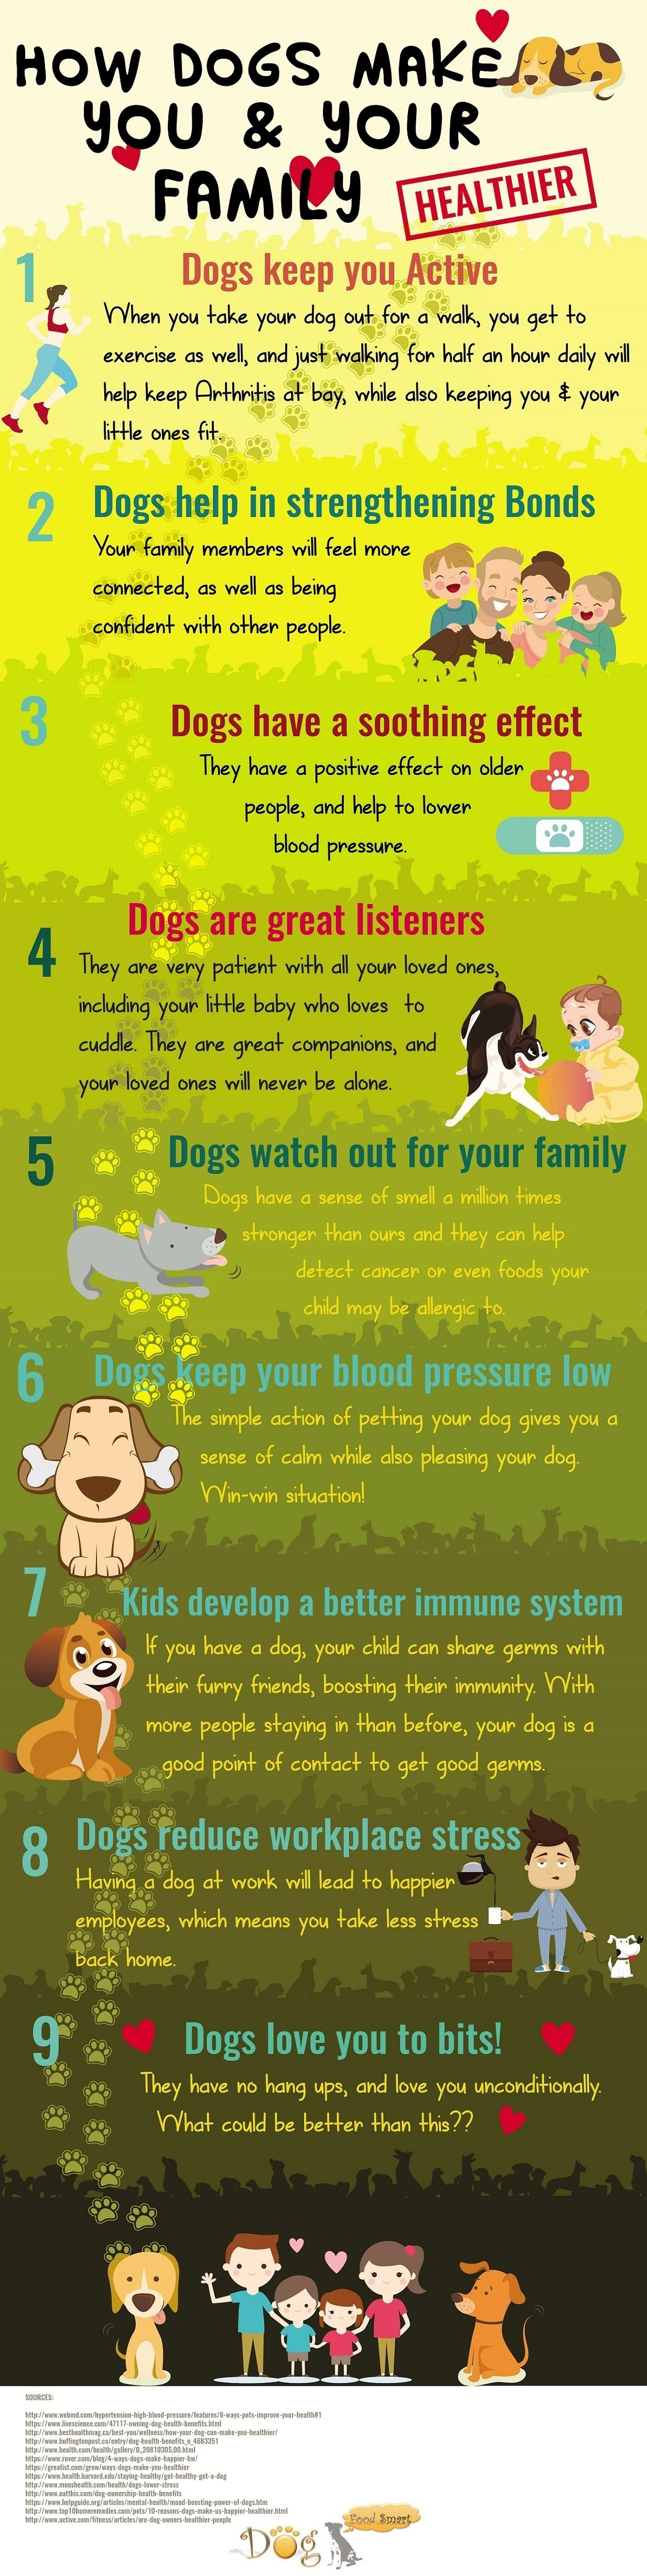 HOW DOGS MAKE YOU & YOUR FAMILY HEALTHIER #INFOGRAPHIC